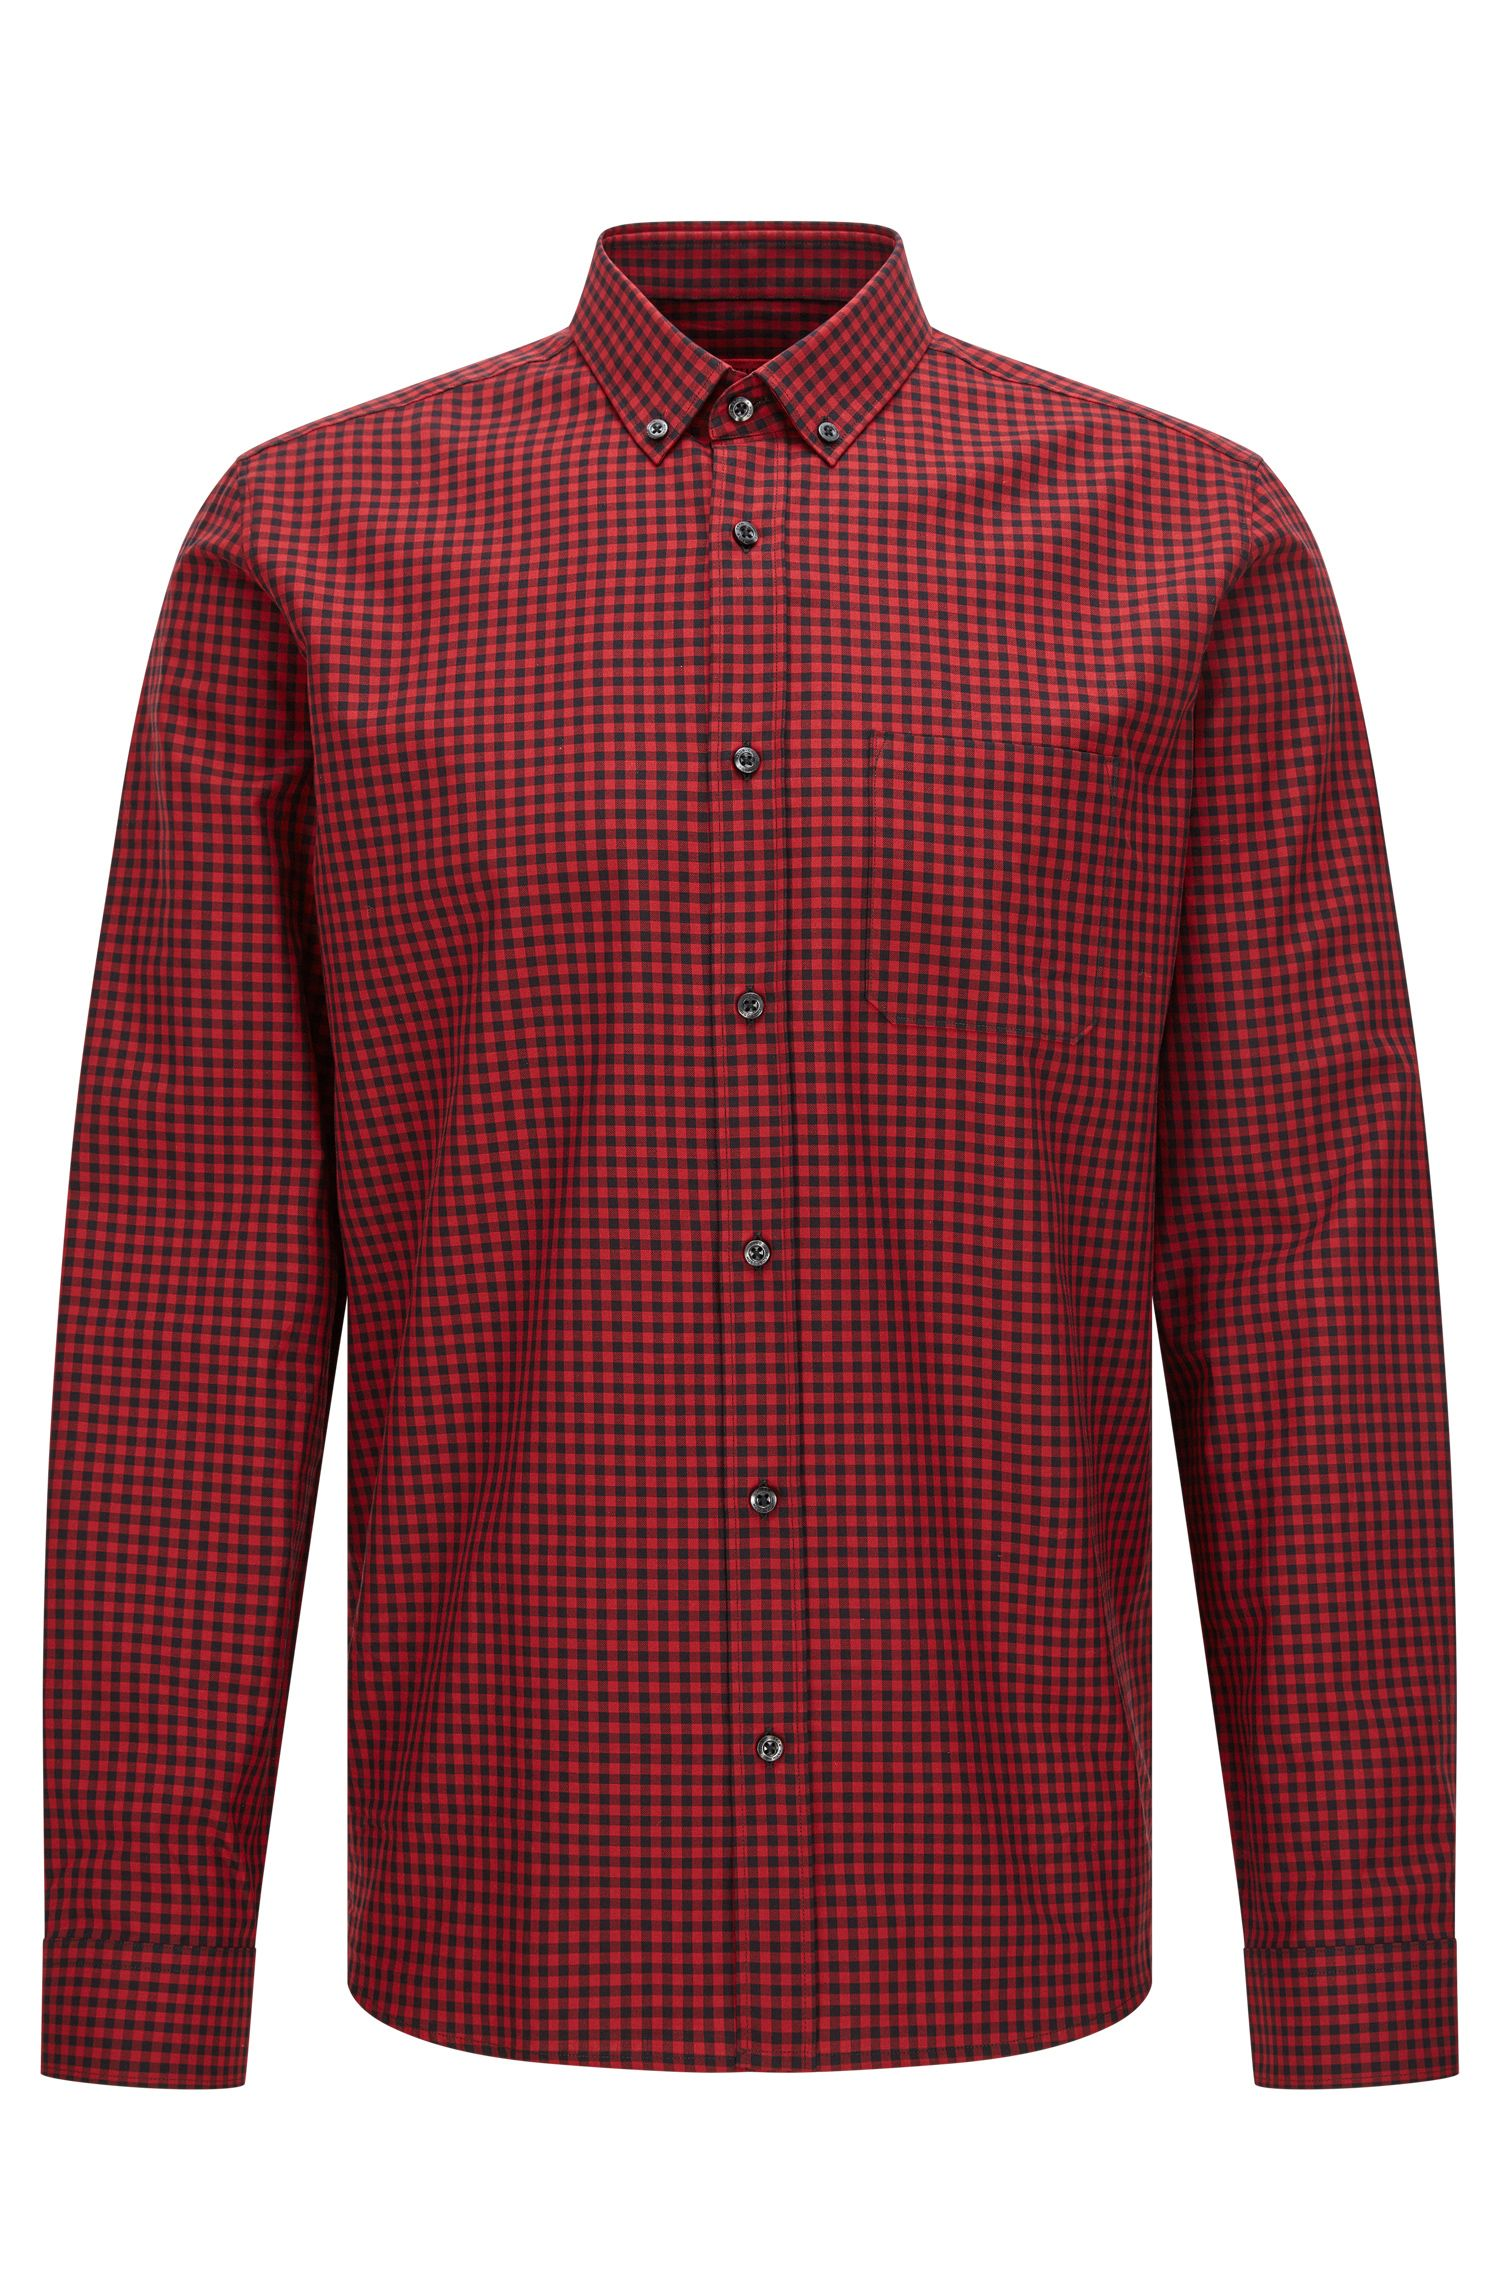 Relaxed-fit shirt in cotton with Vichy check